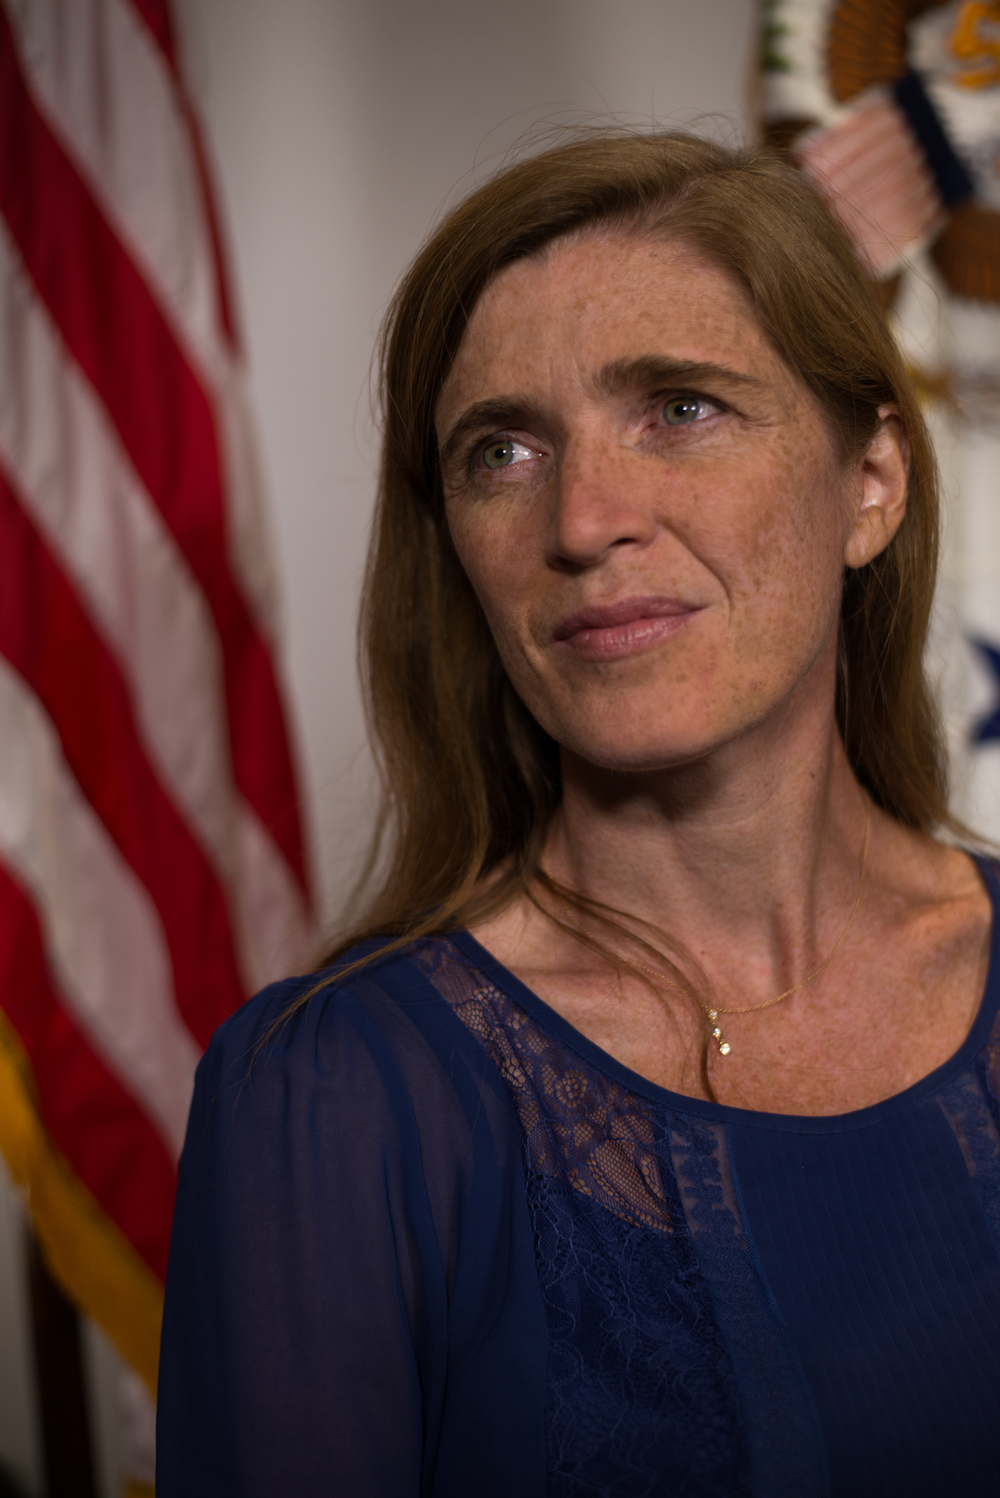 Samantha Power, the United States permanent representative to the United Nations, looks on after an interview with the Guardian in New York on Sept. 3, 2015.